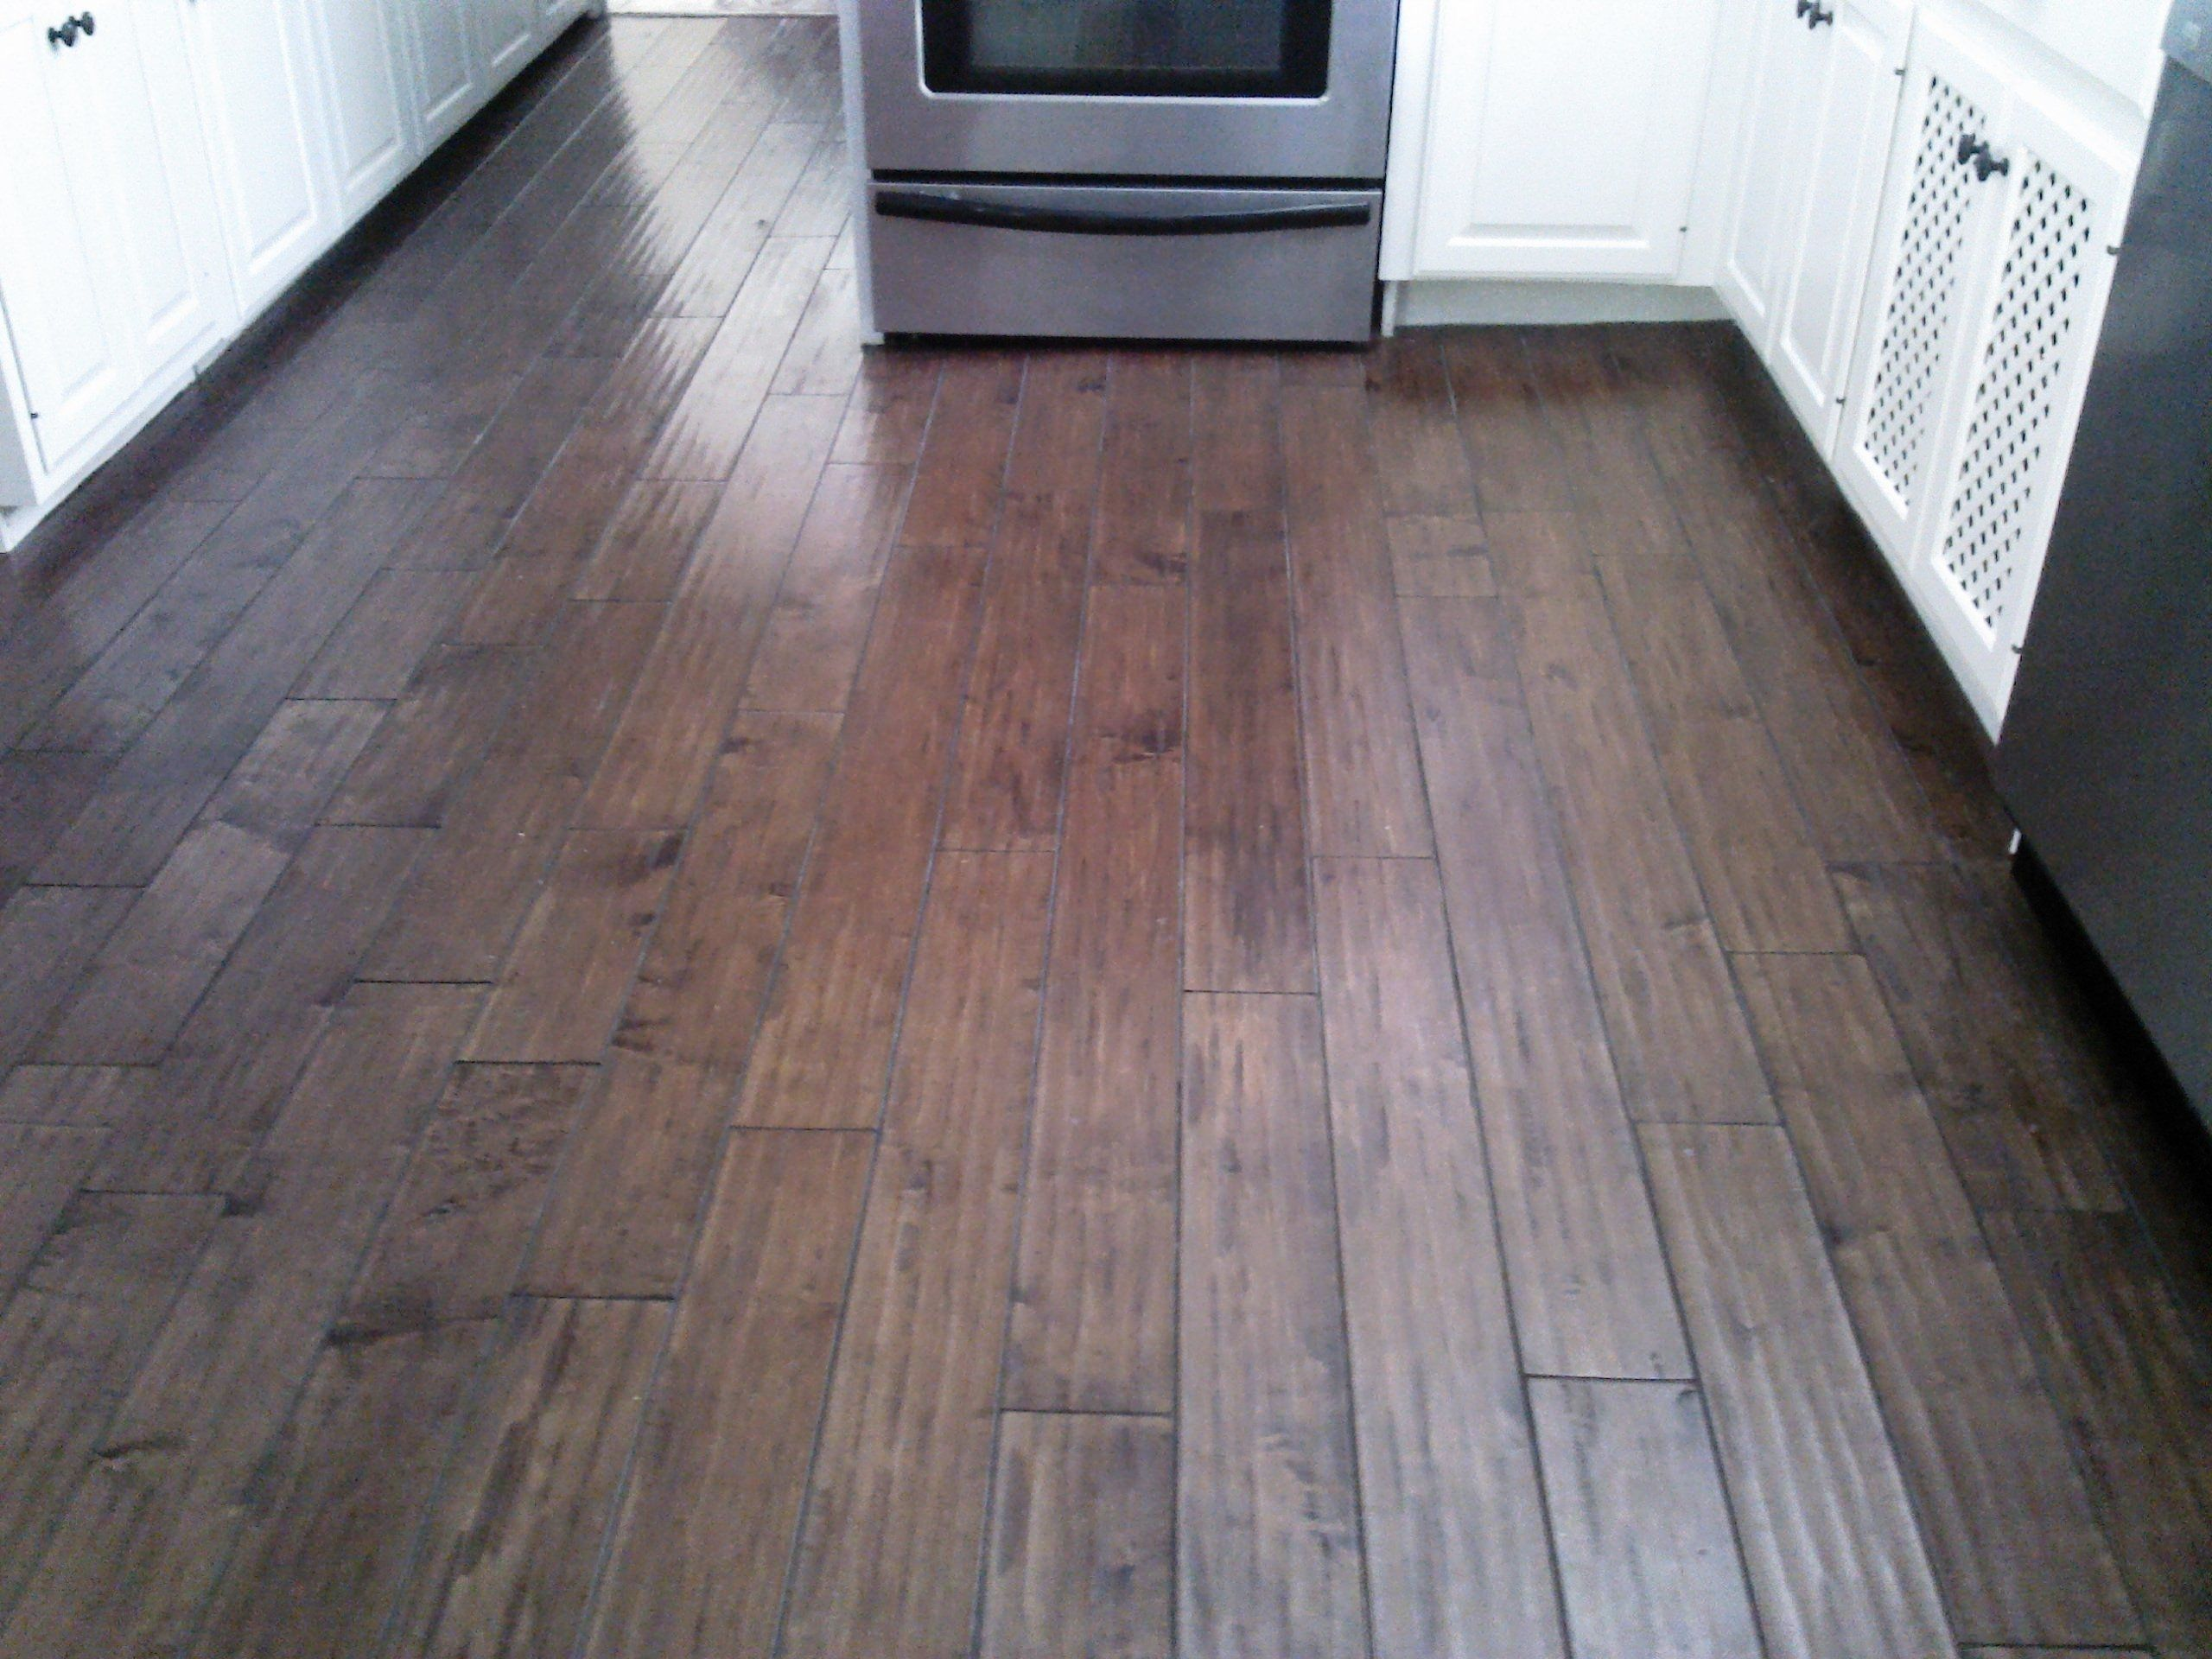 Vinyl Plank Flooring Vs Wood Look Tile When The Subfloor Is Capable Of Supporting You Have To Learn Before Are A